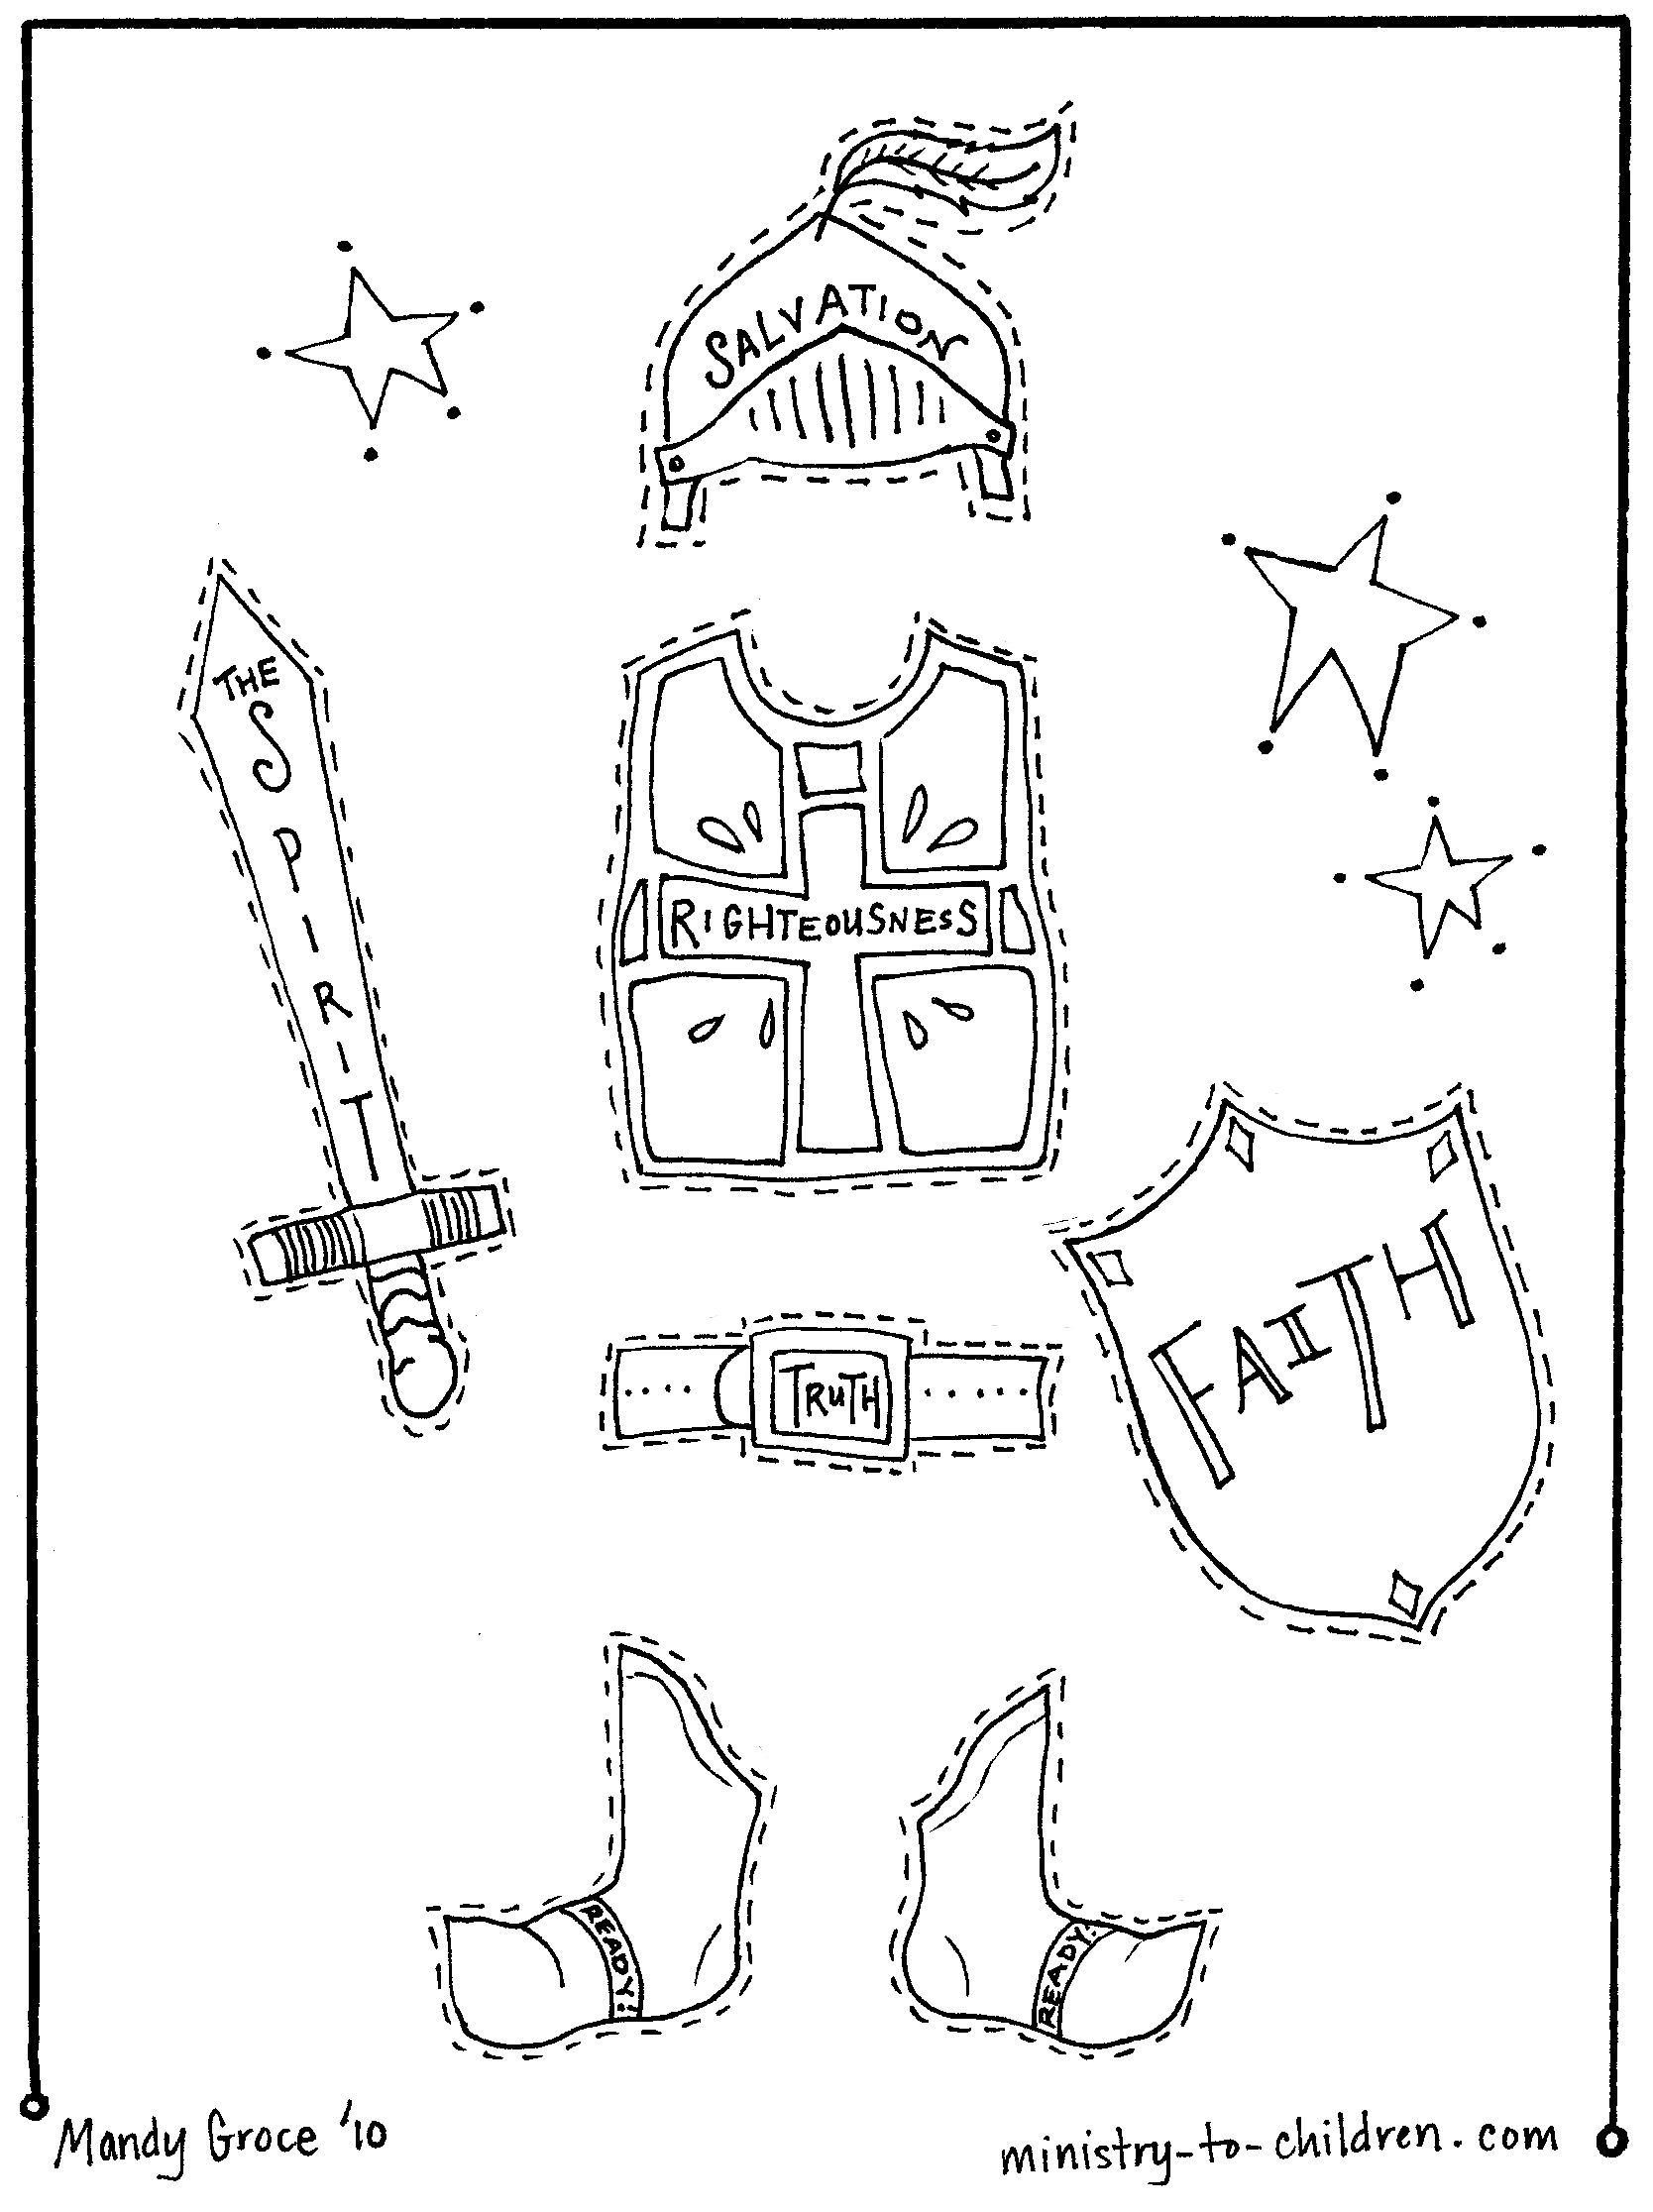 Armor For Kids Draw Body Cut Out Cover With Each Piece